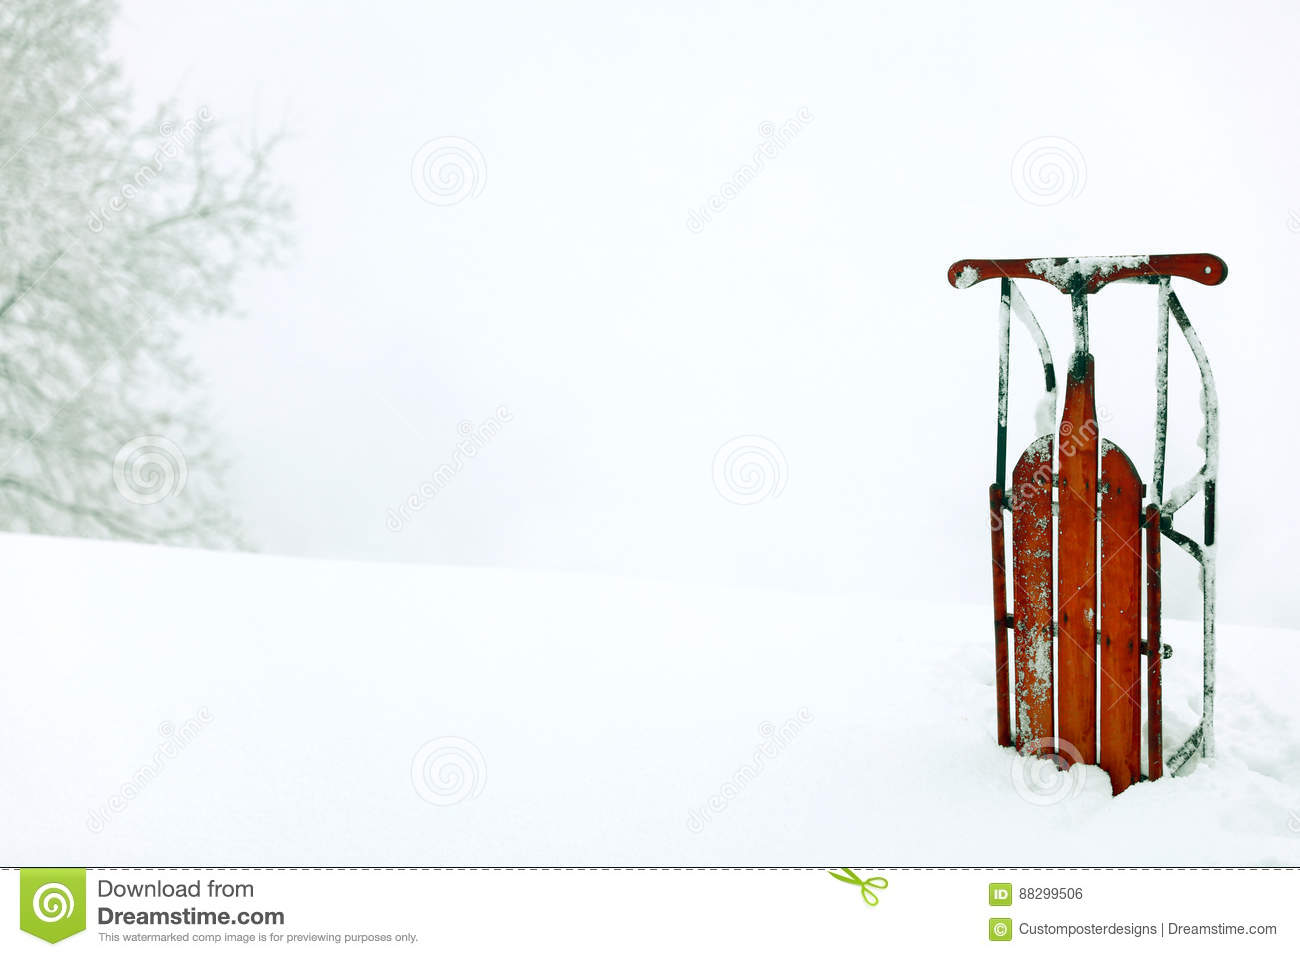 Download A Winter Snow Scene Background With A Red Vintage Upright Sled. Stock Photo - Image of picture, sledding: 88299506